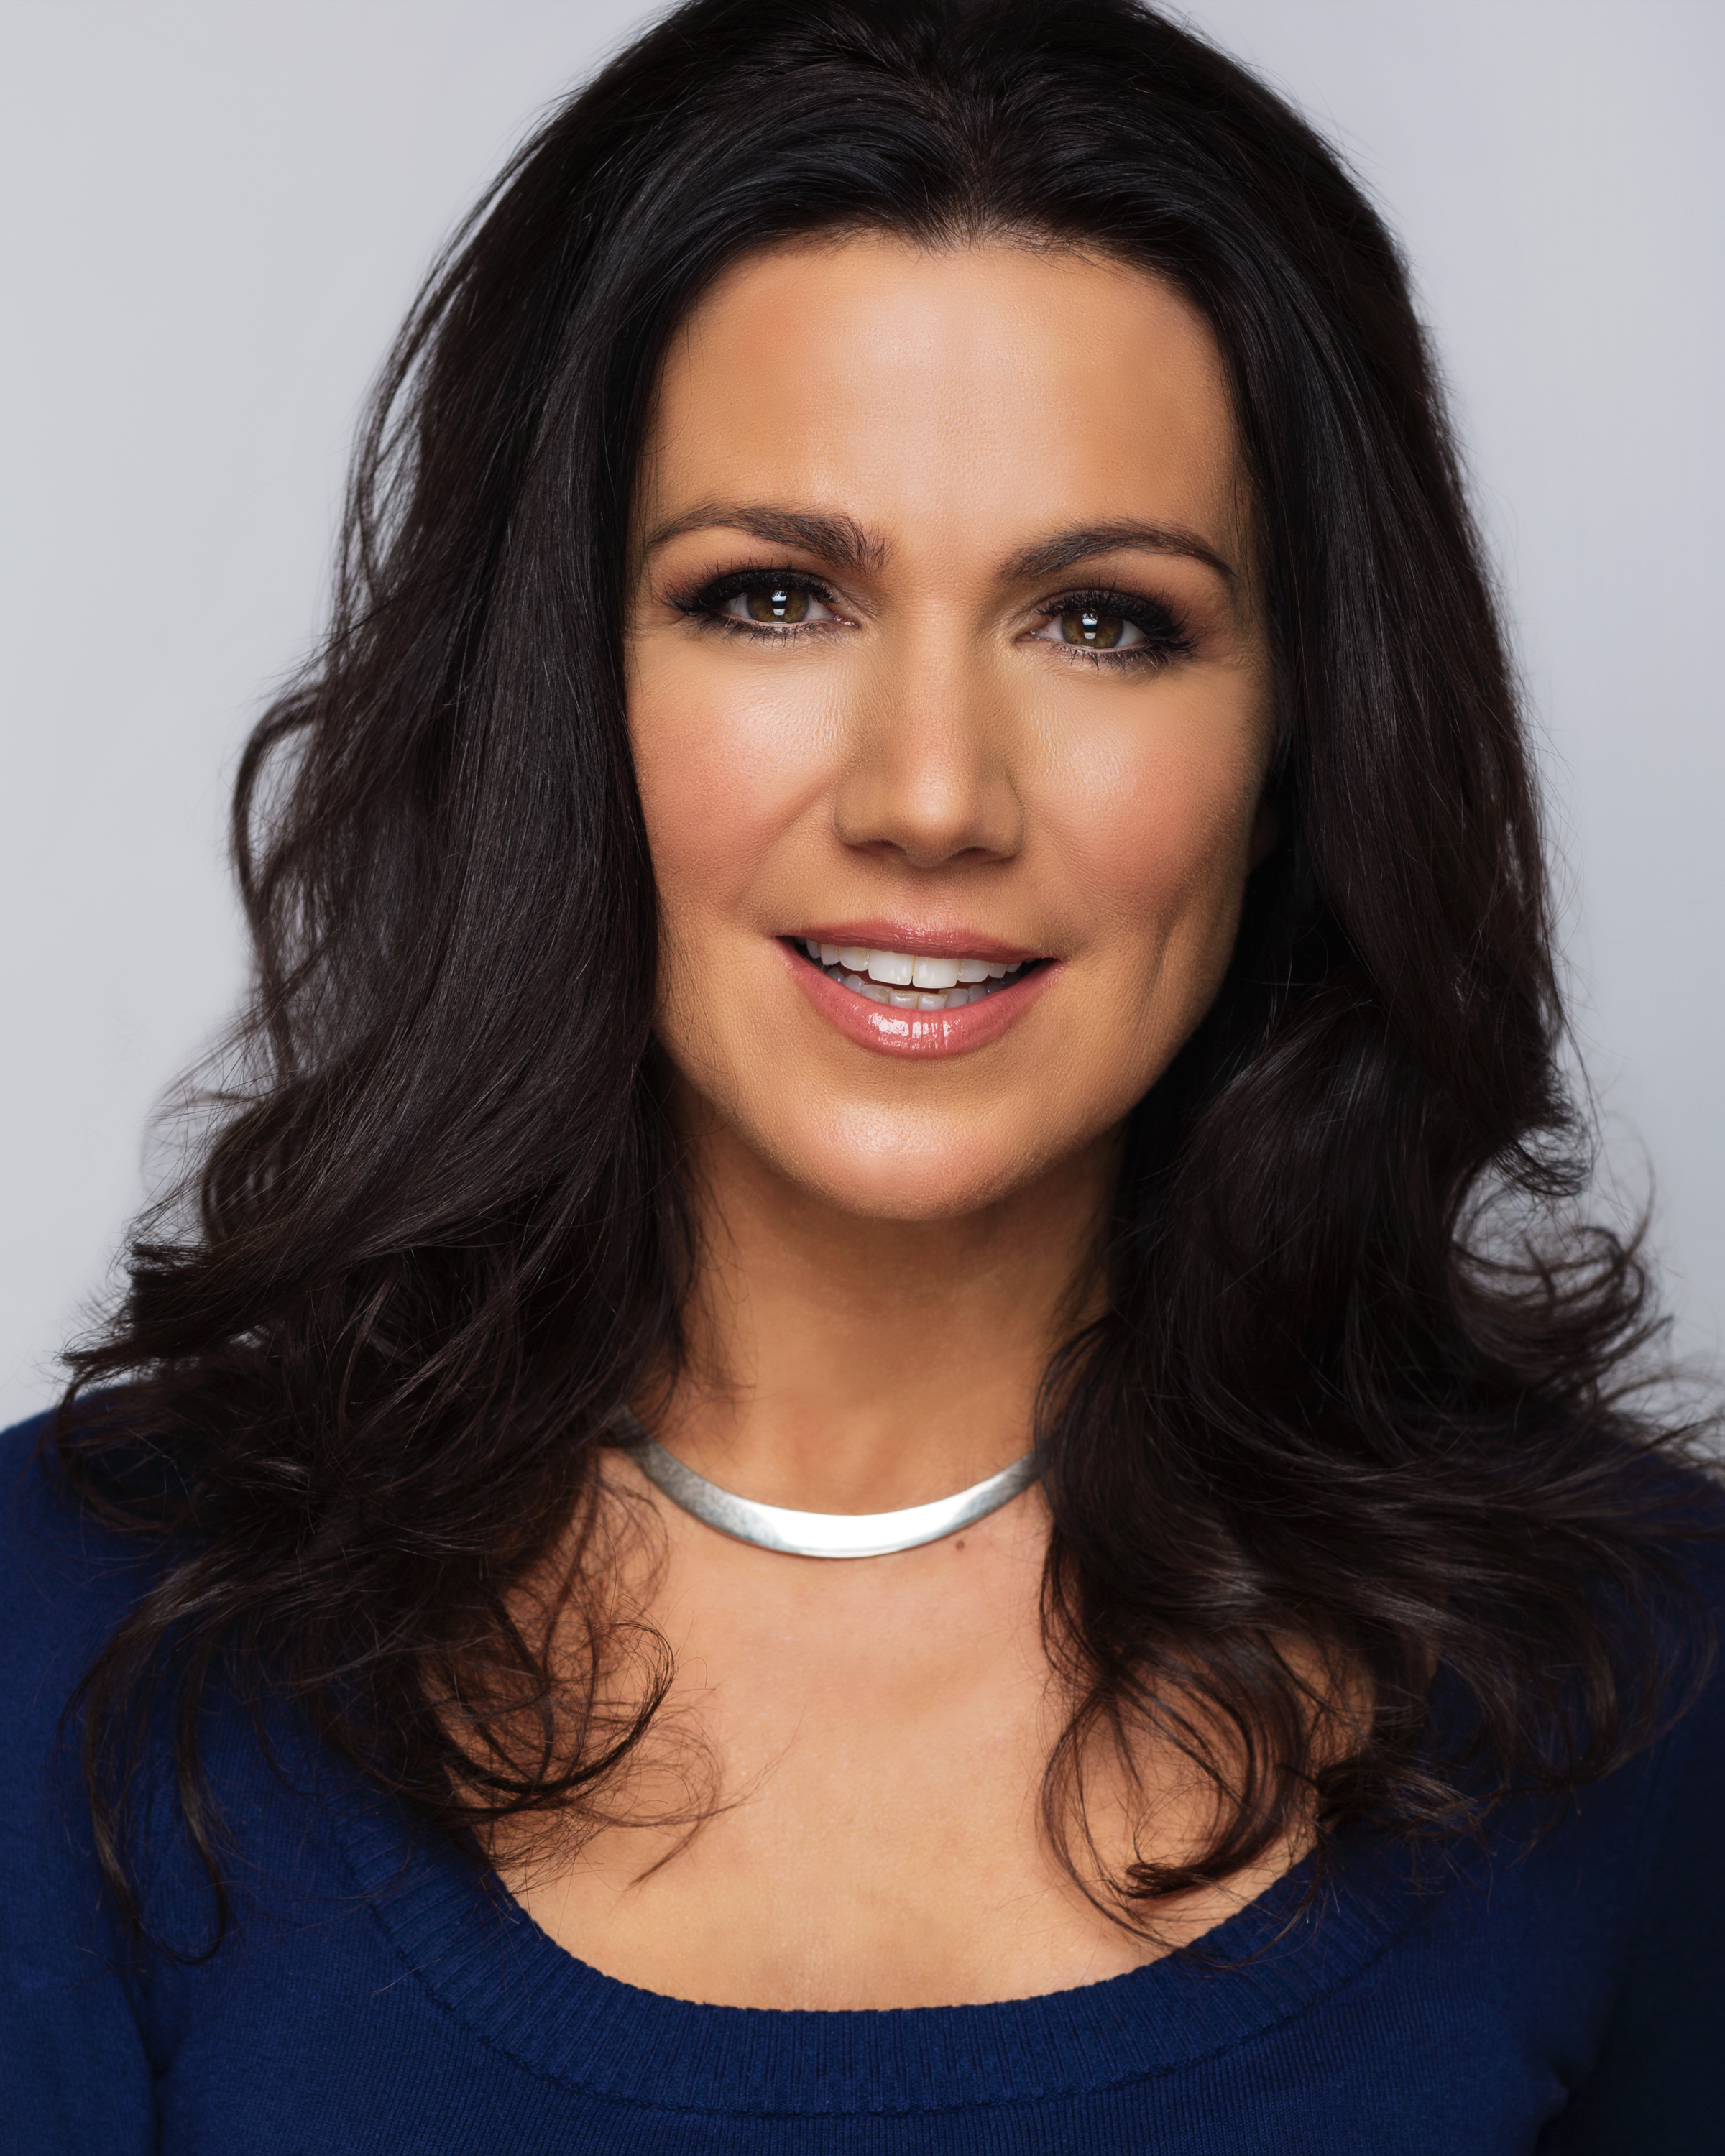 Photo a dark-haired woman smiling